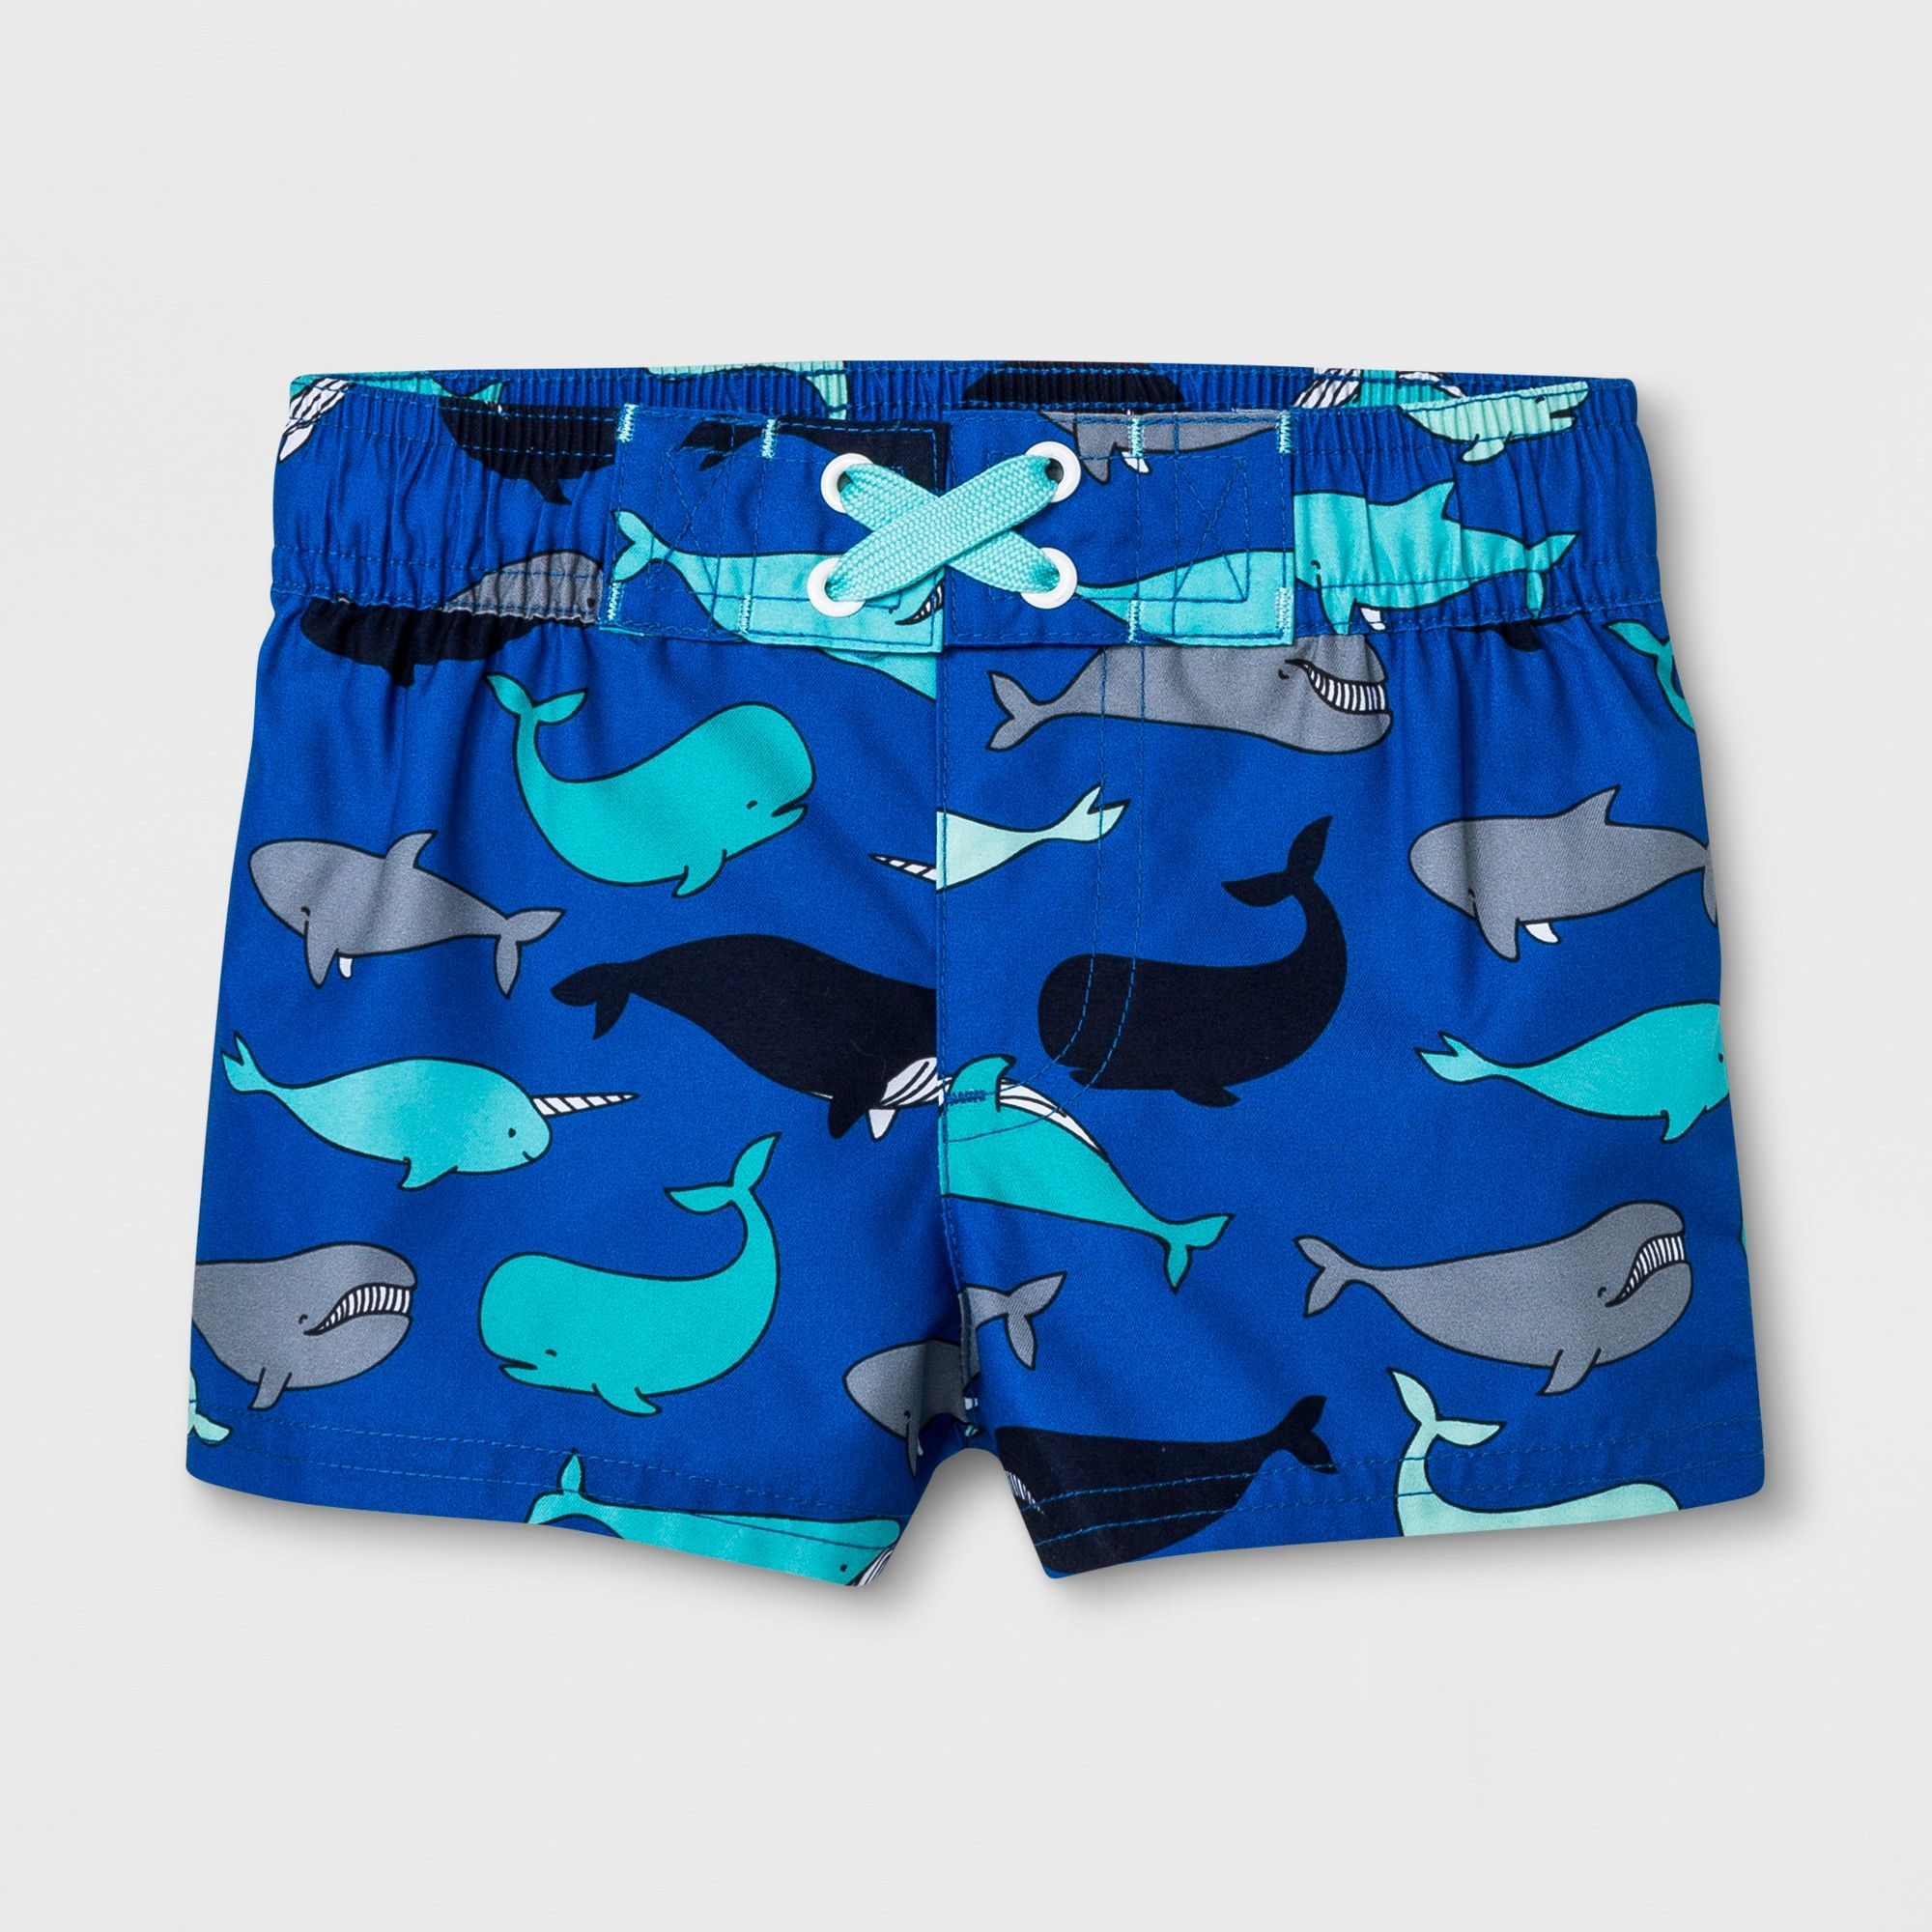 c2604d2faf9dc Baby Boys' Whale Swim Trunks - Cat & Jack Blue 3-6M | Products ...